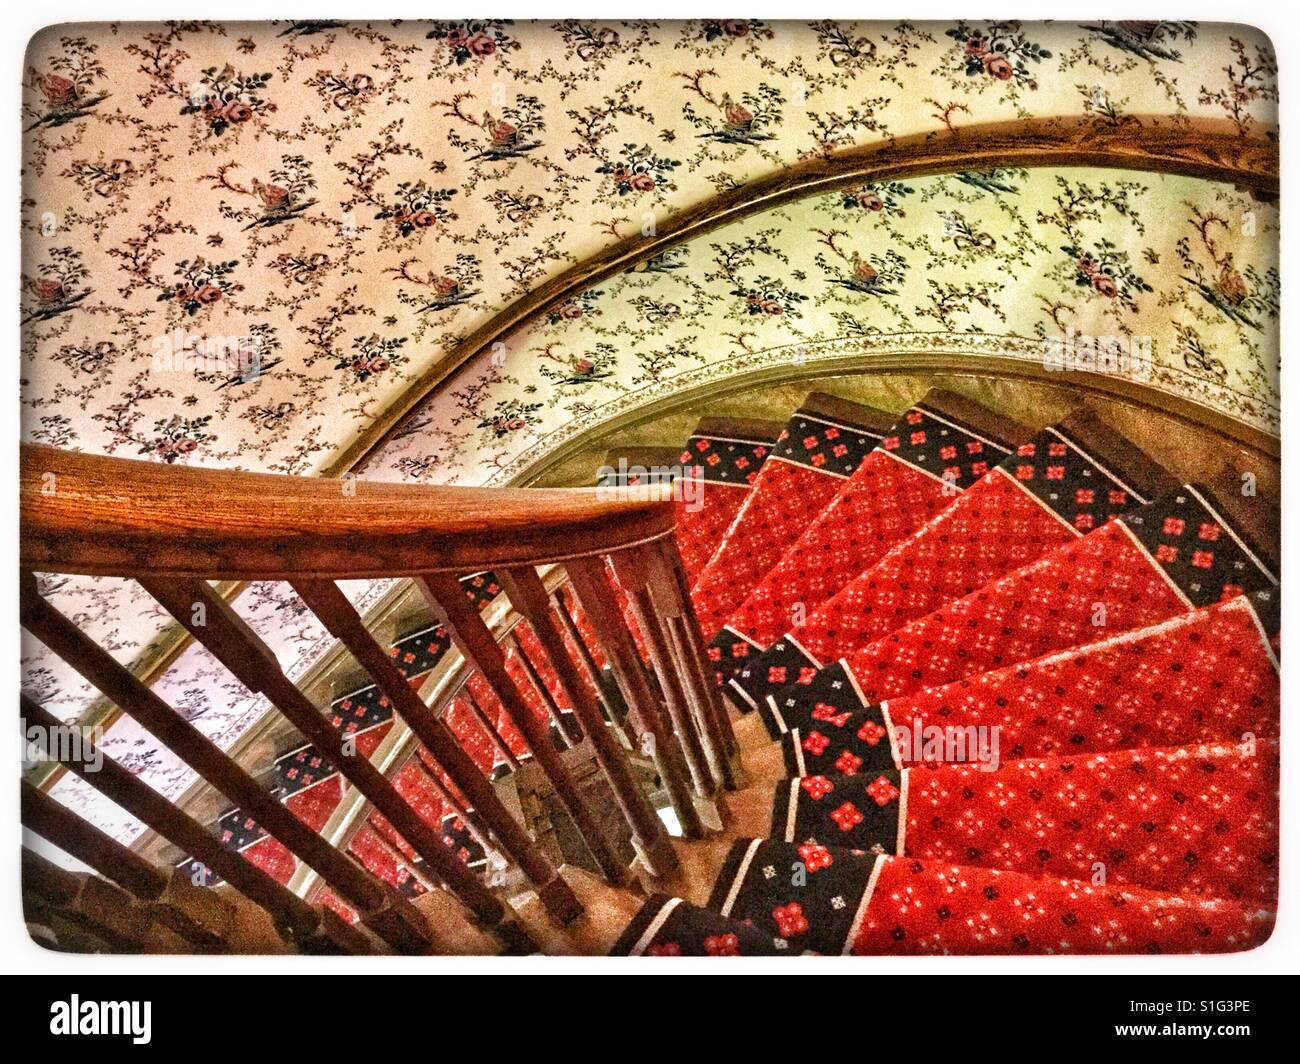 Victorian Spiral Staircase Stock Photo: 310755494   Alamy